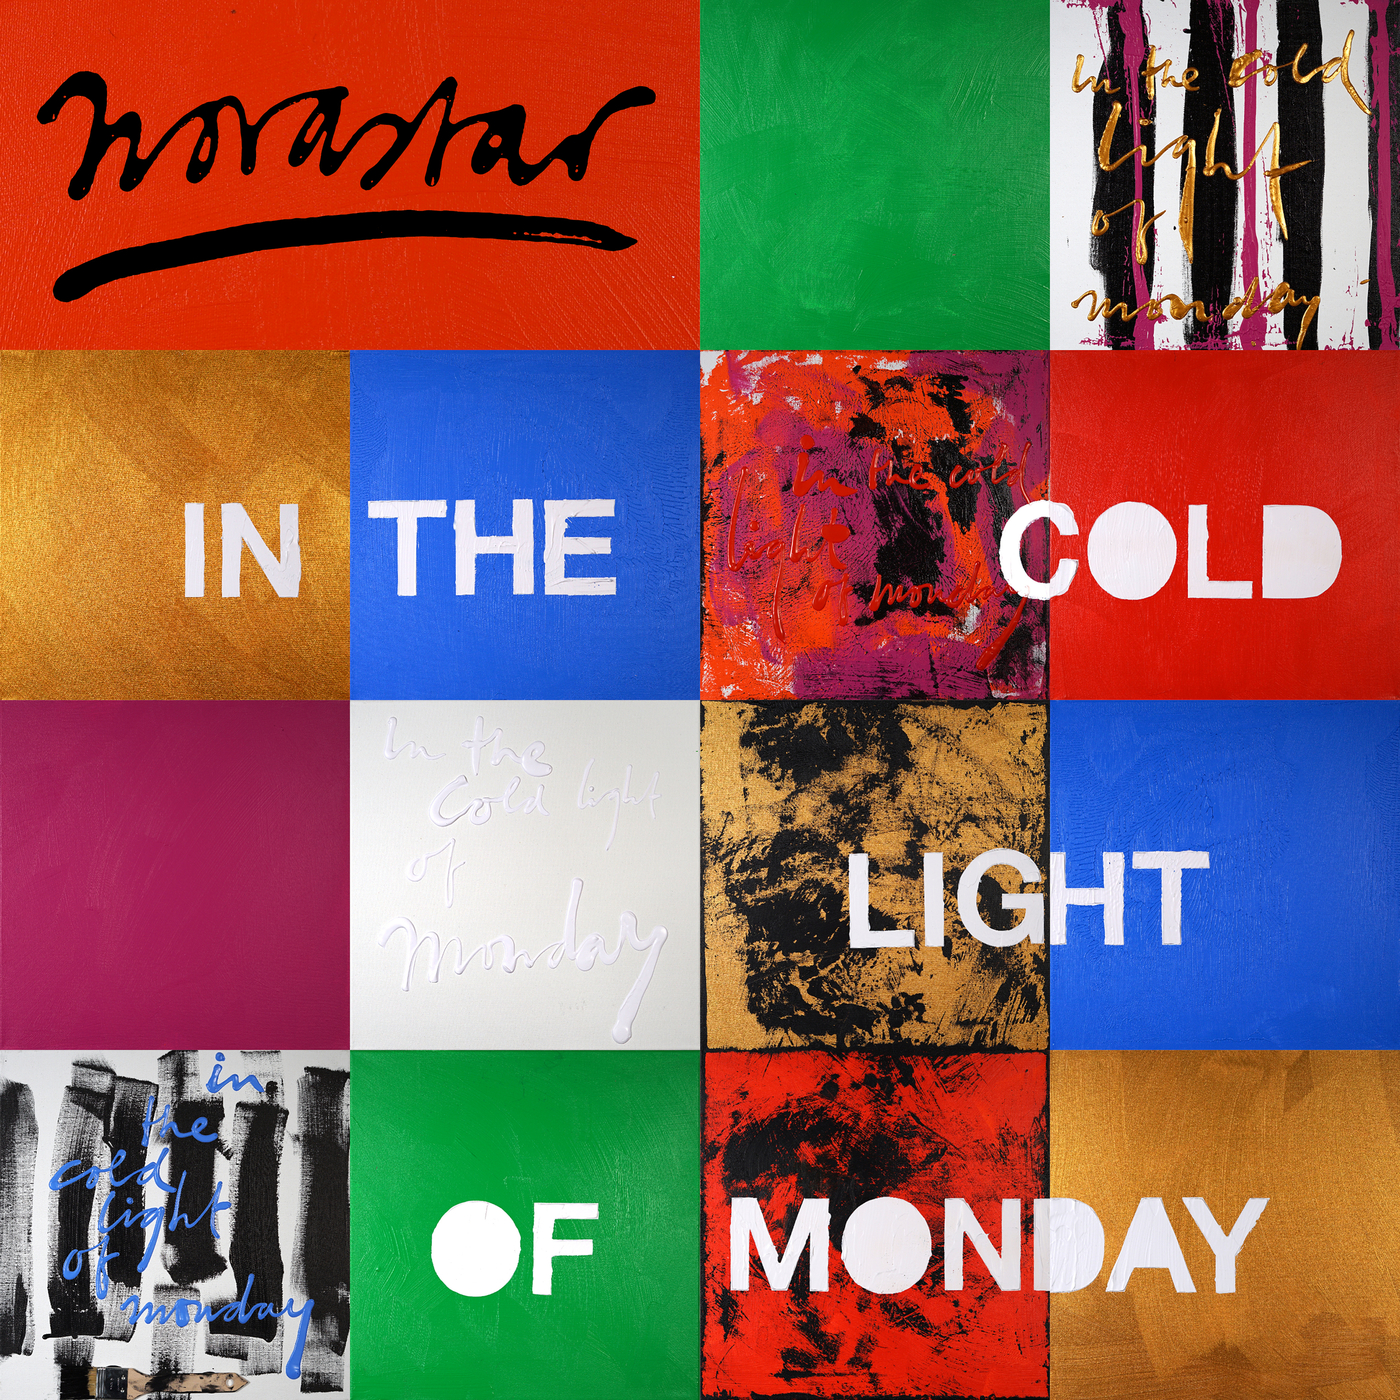 In The Cold Light of Monday - Novastar